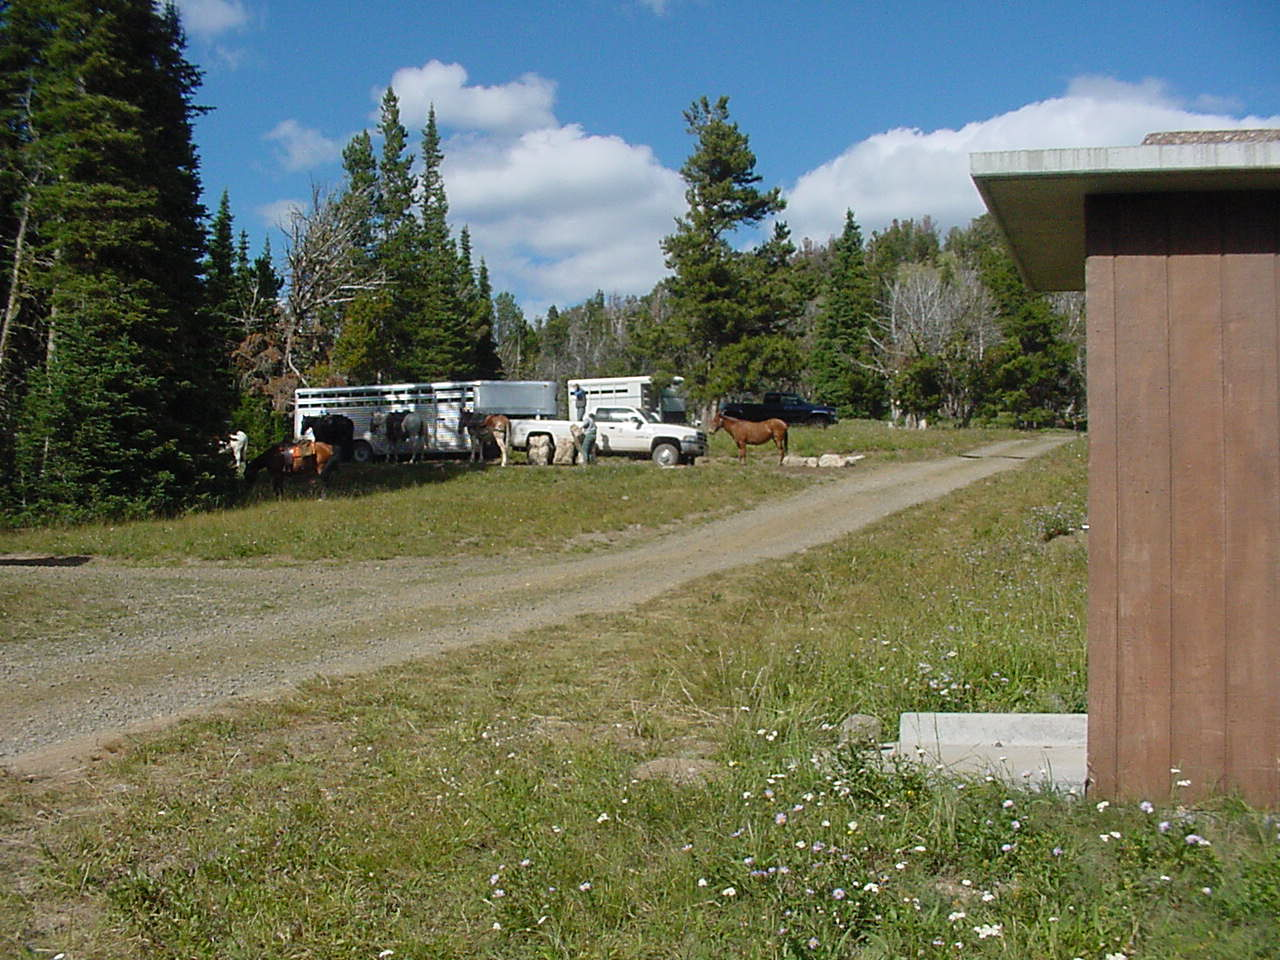 Mountain horse camp with truck and trailer